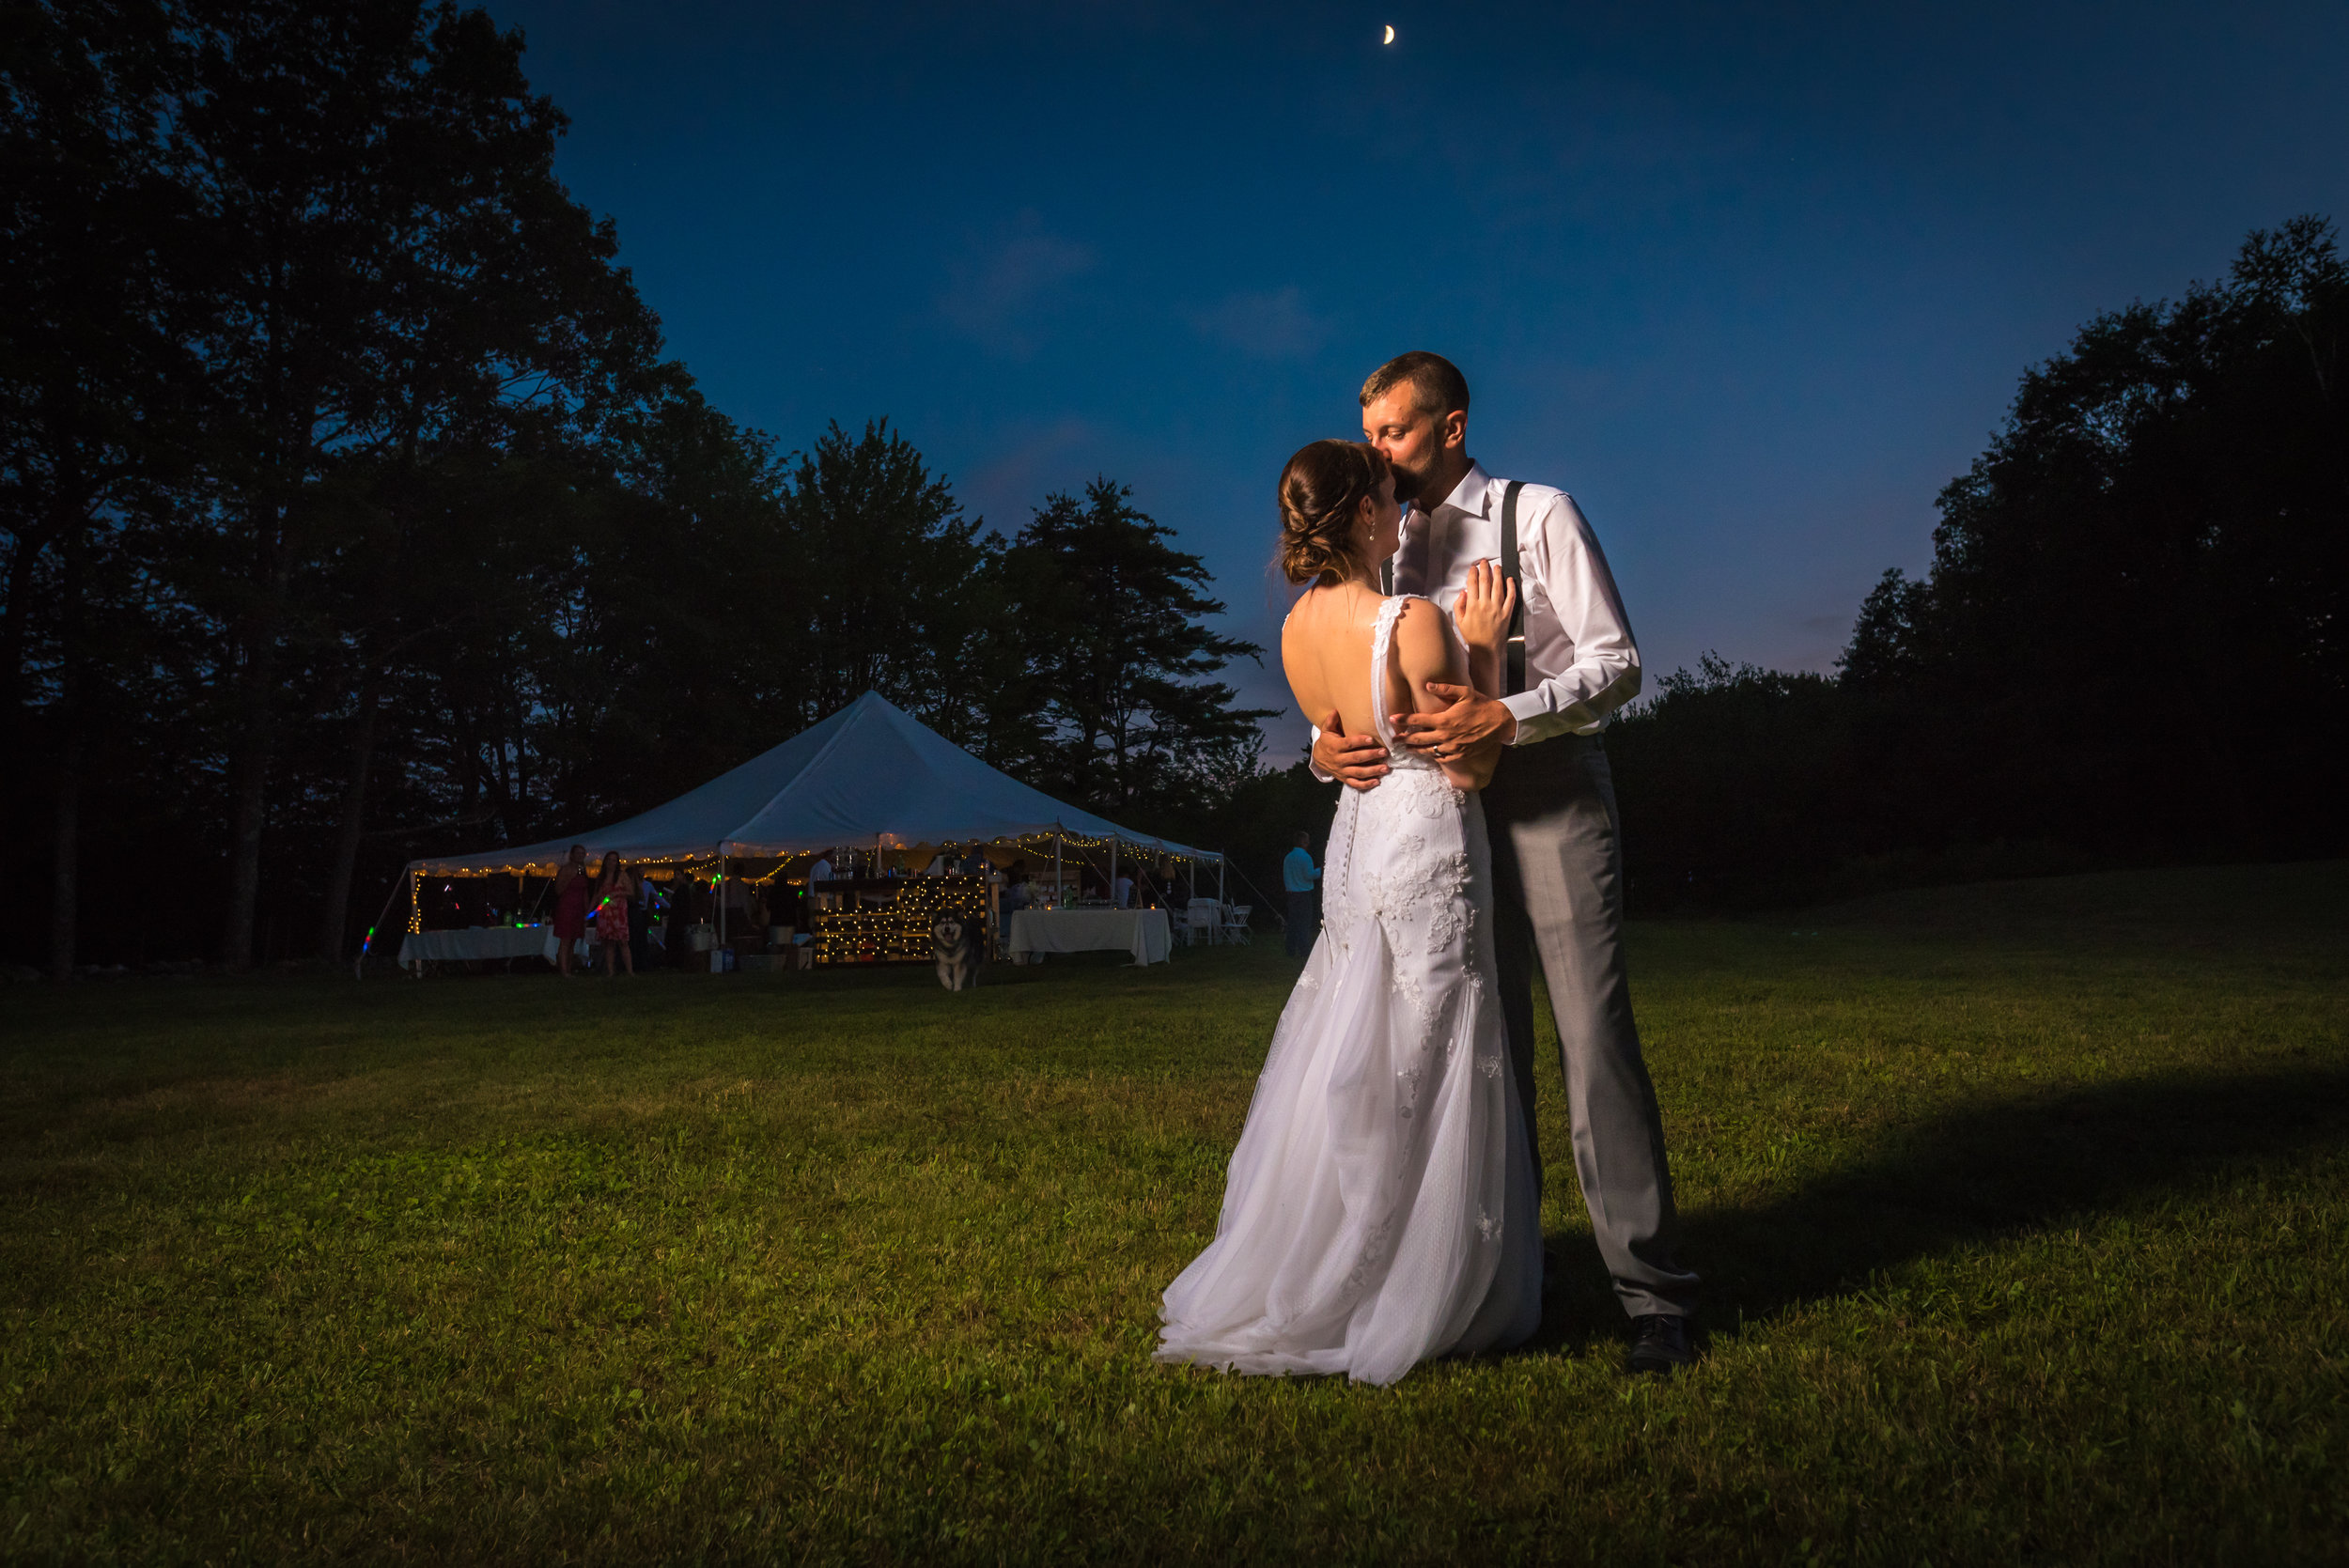 New Hampshire Bride Groom Photos Night | Mike Sears Photography